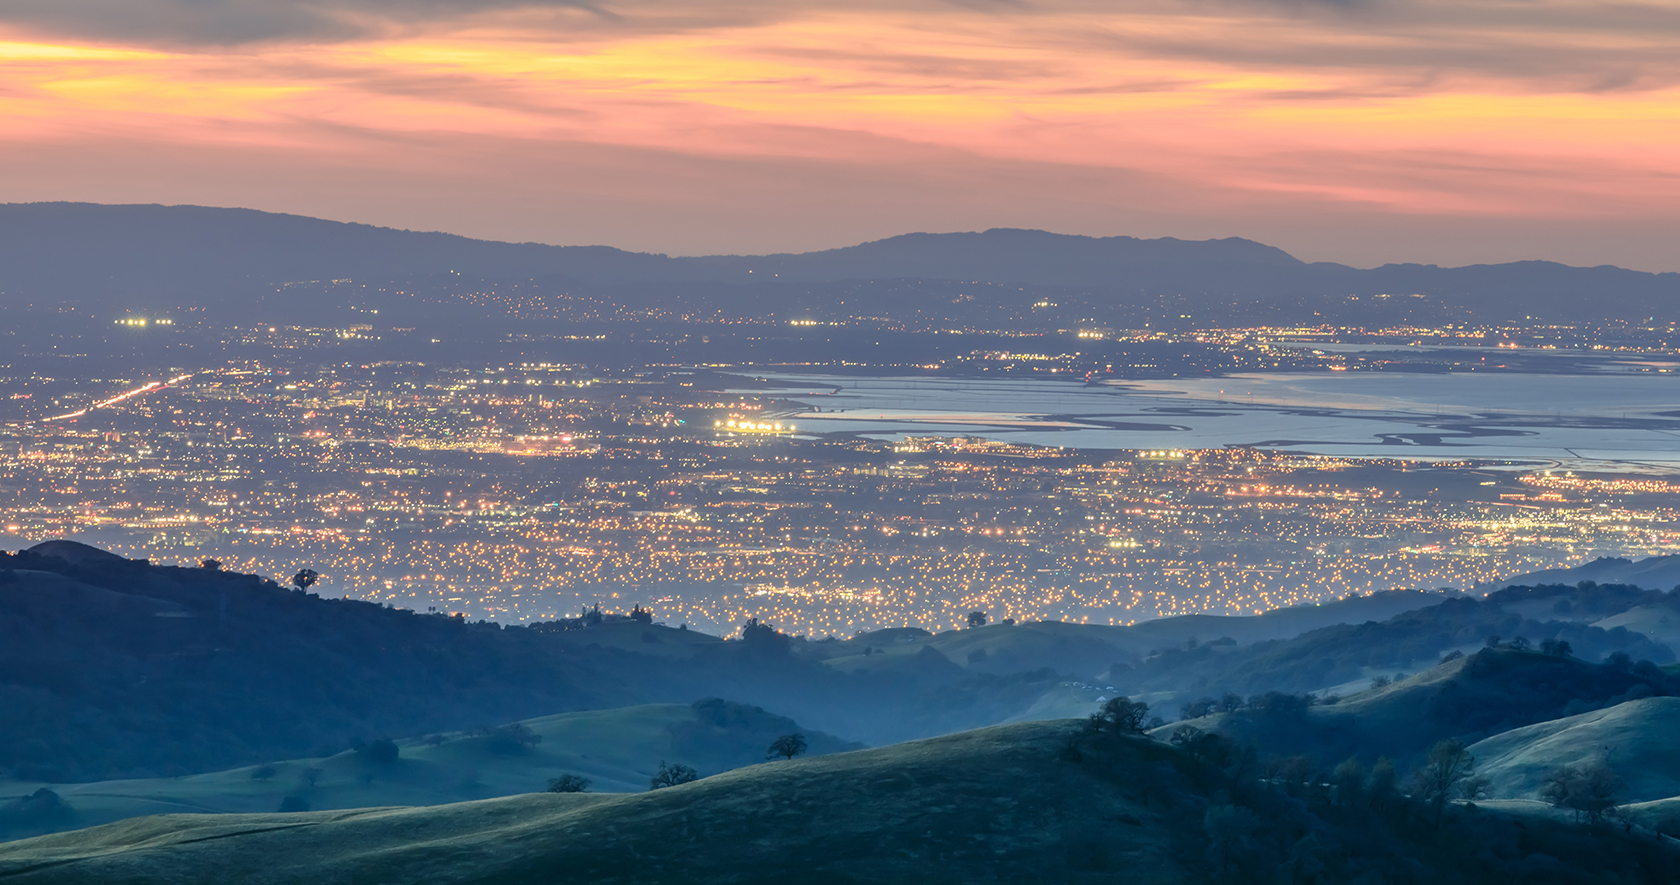 Santa Clara Valley at dusk as seen from Lick Observatory in Mount Hamilton east of San Jose, Santa Clara County, California, USA